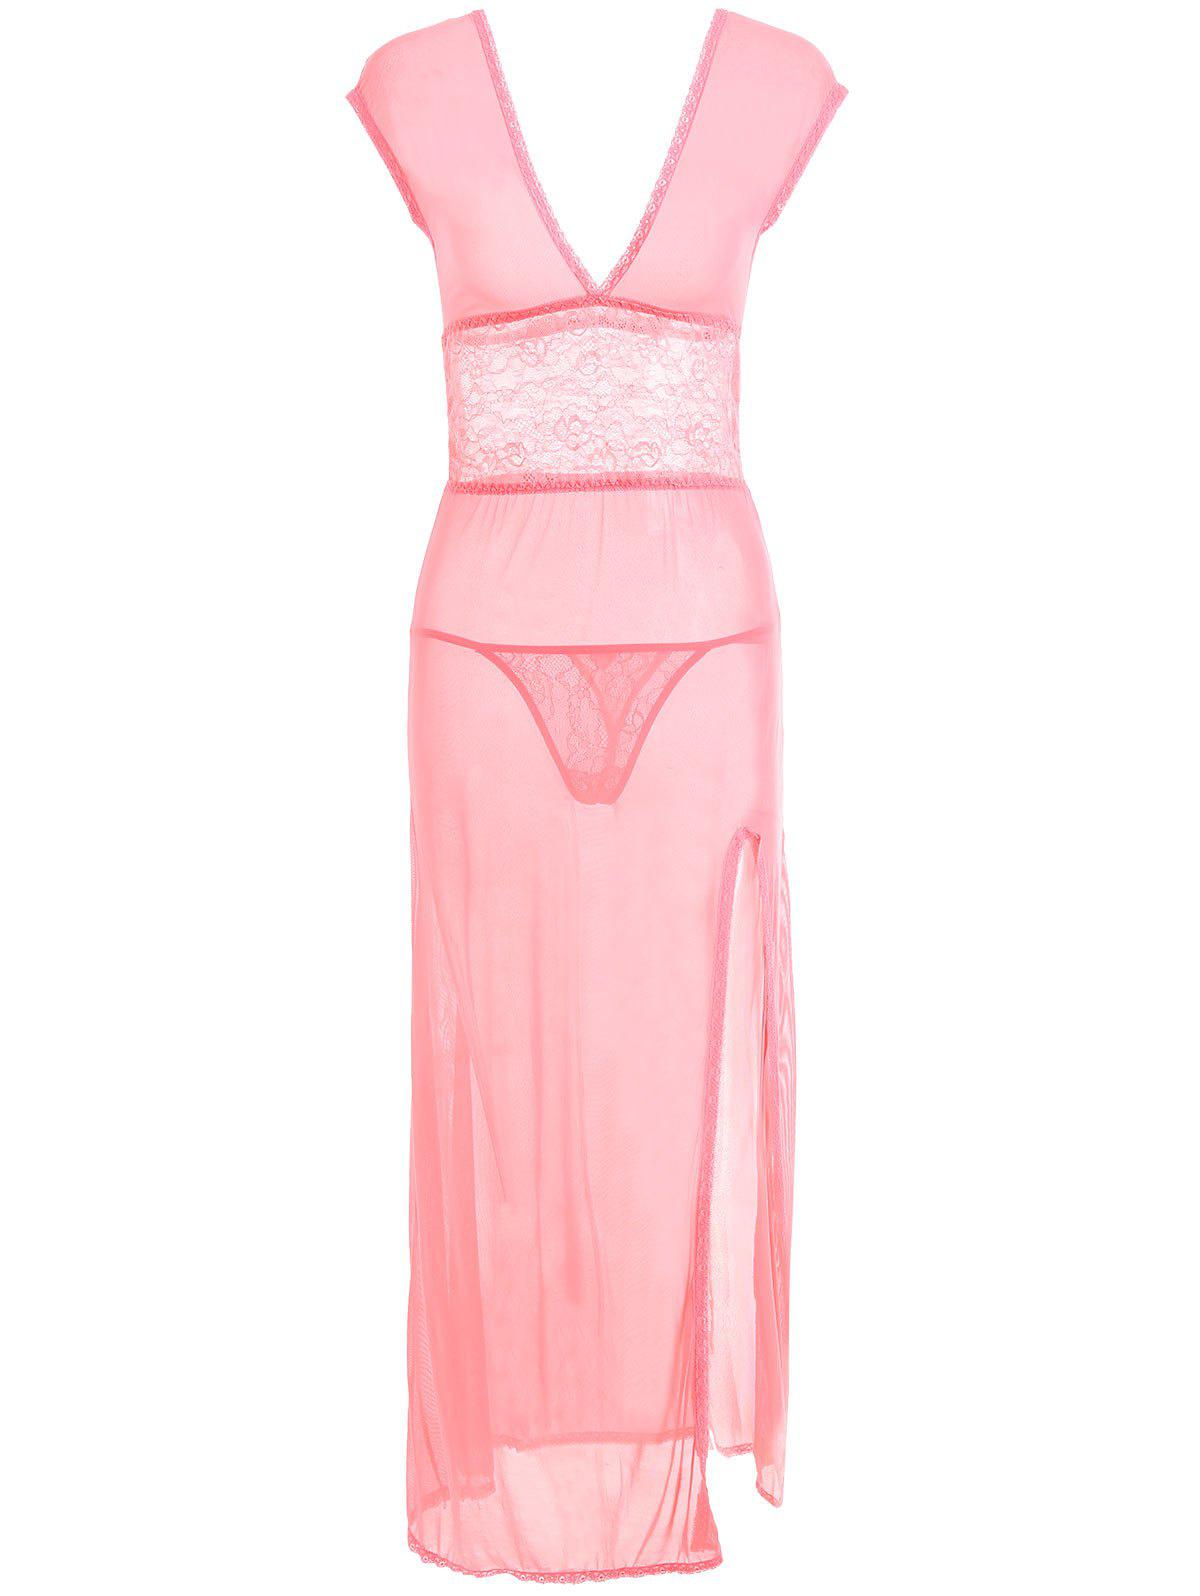 Plunge Neck Mesh Long Slit Dress - PINK ONE SIZE